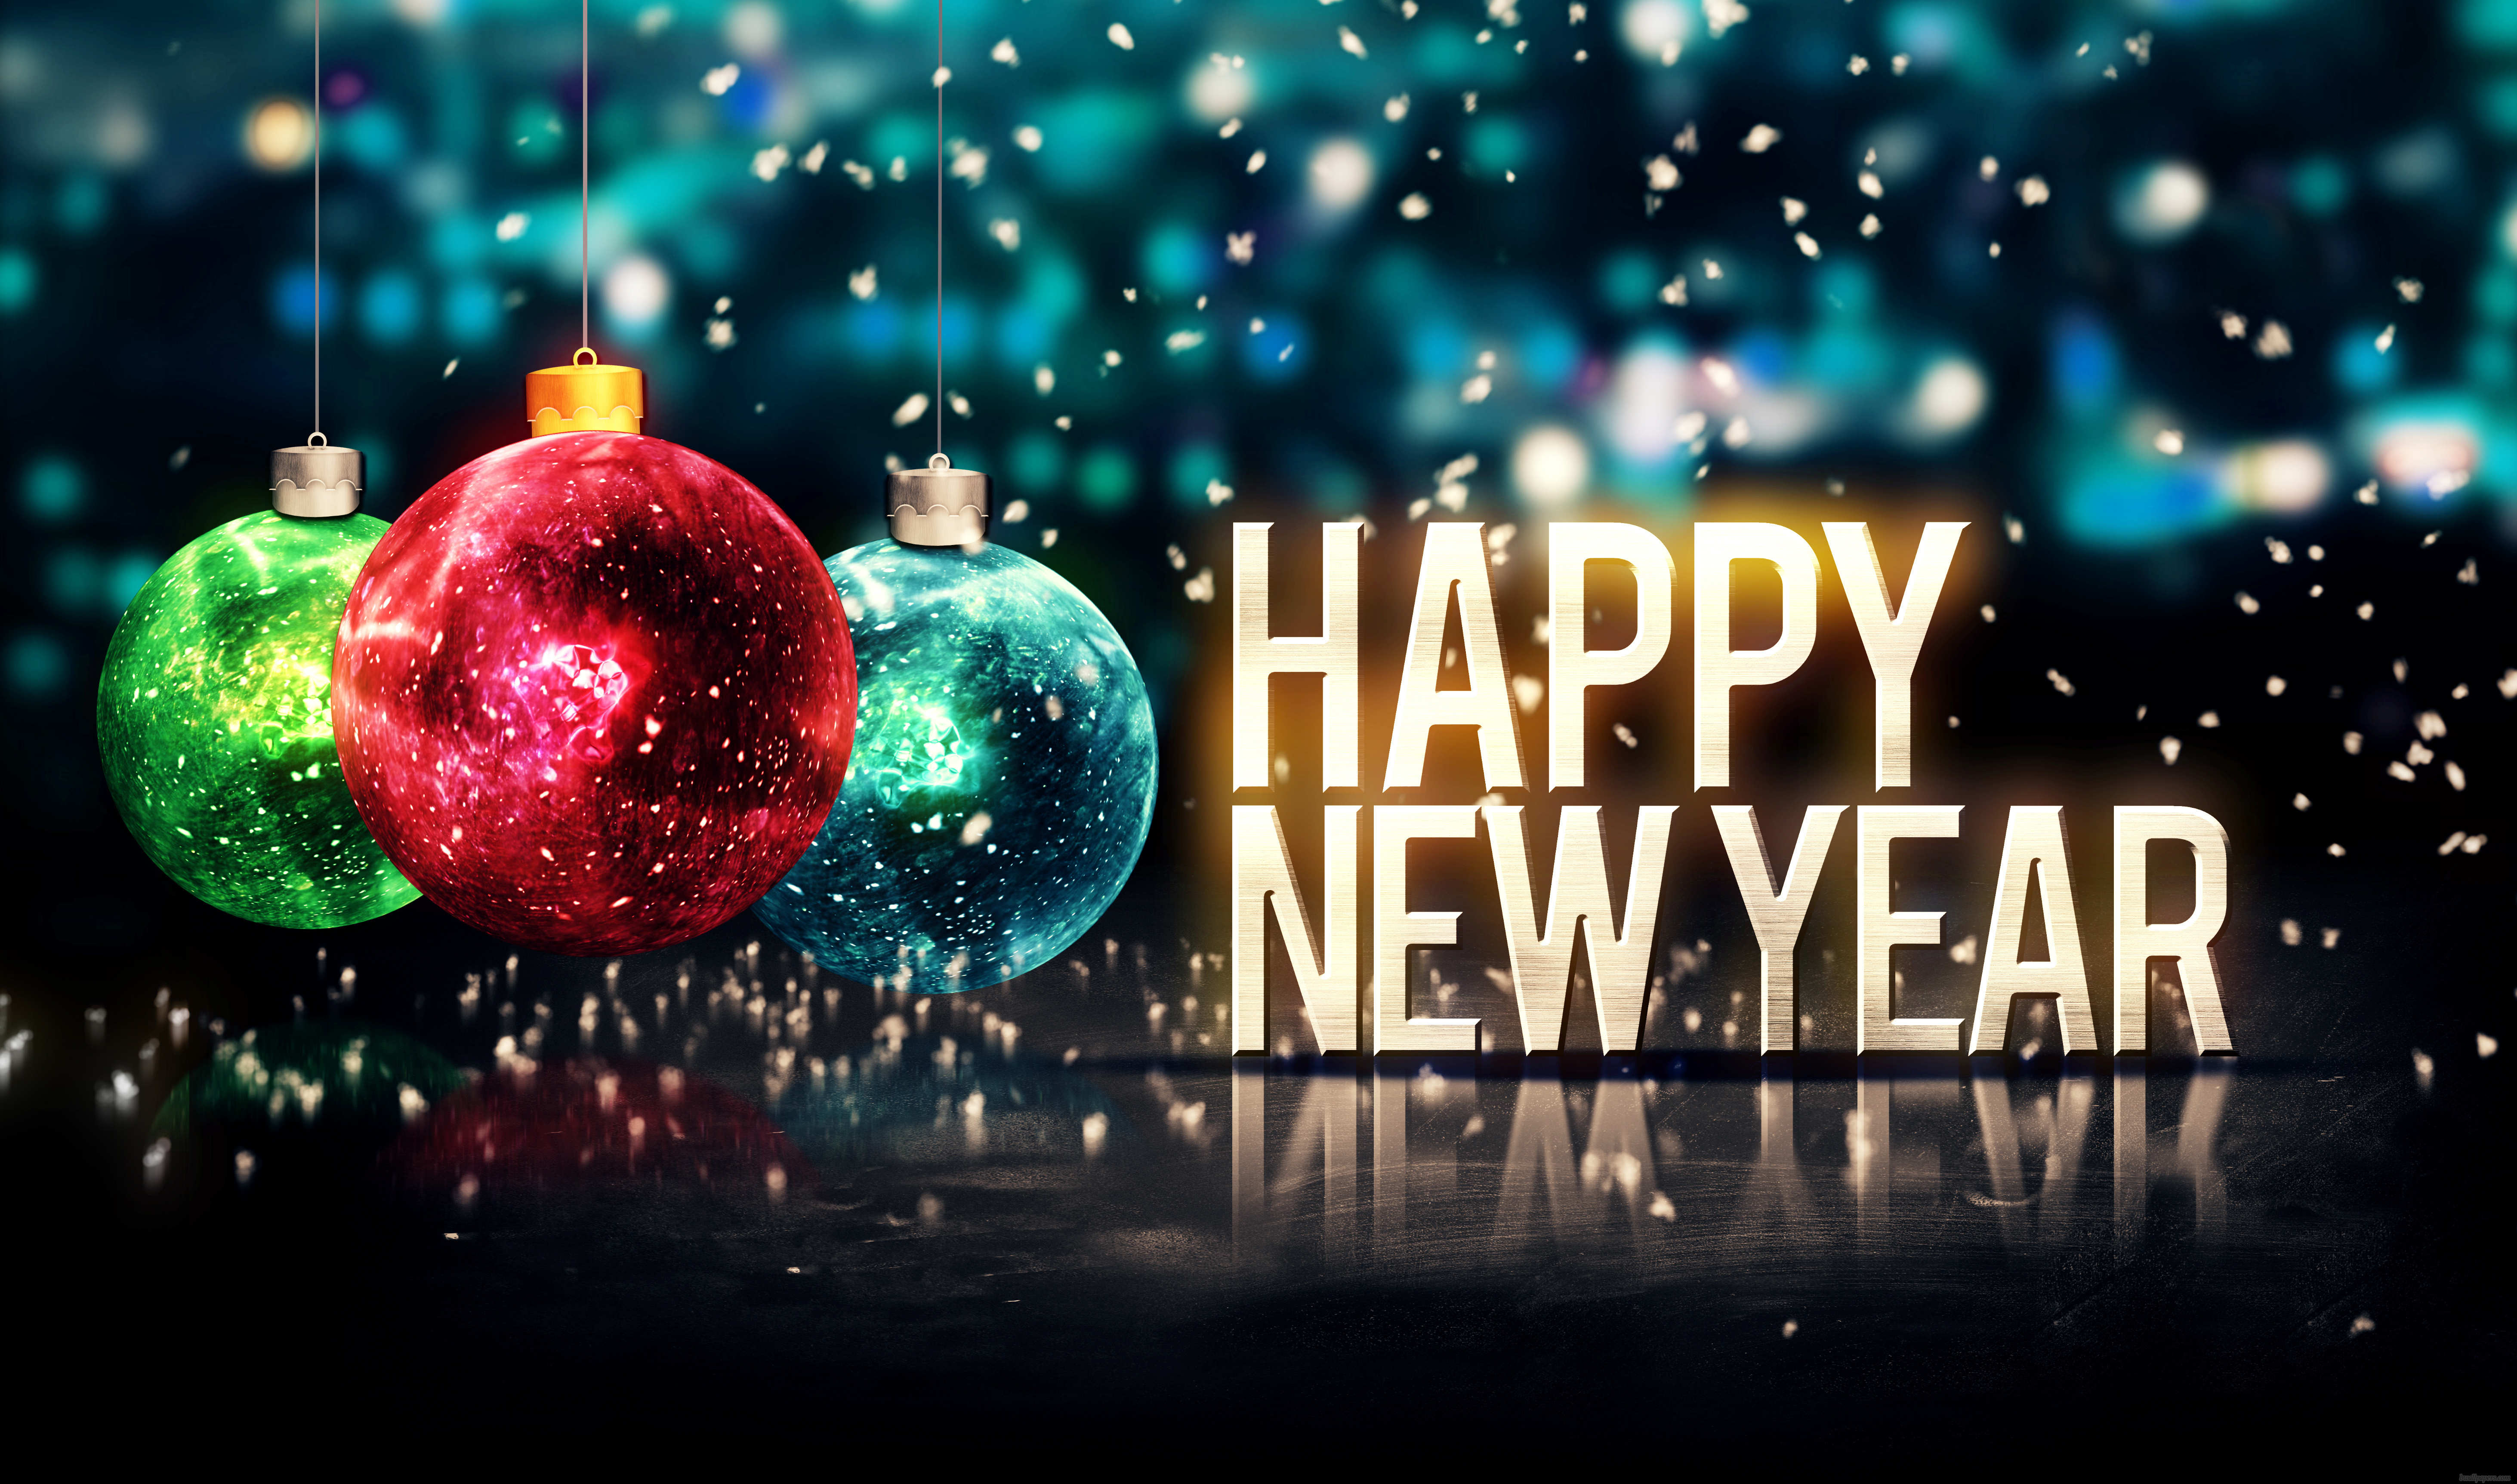 Happy New Year 2016 Wallpaper Wallpaper High Definition High